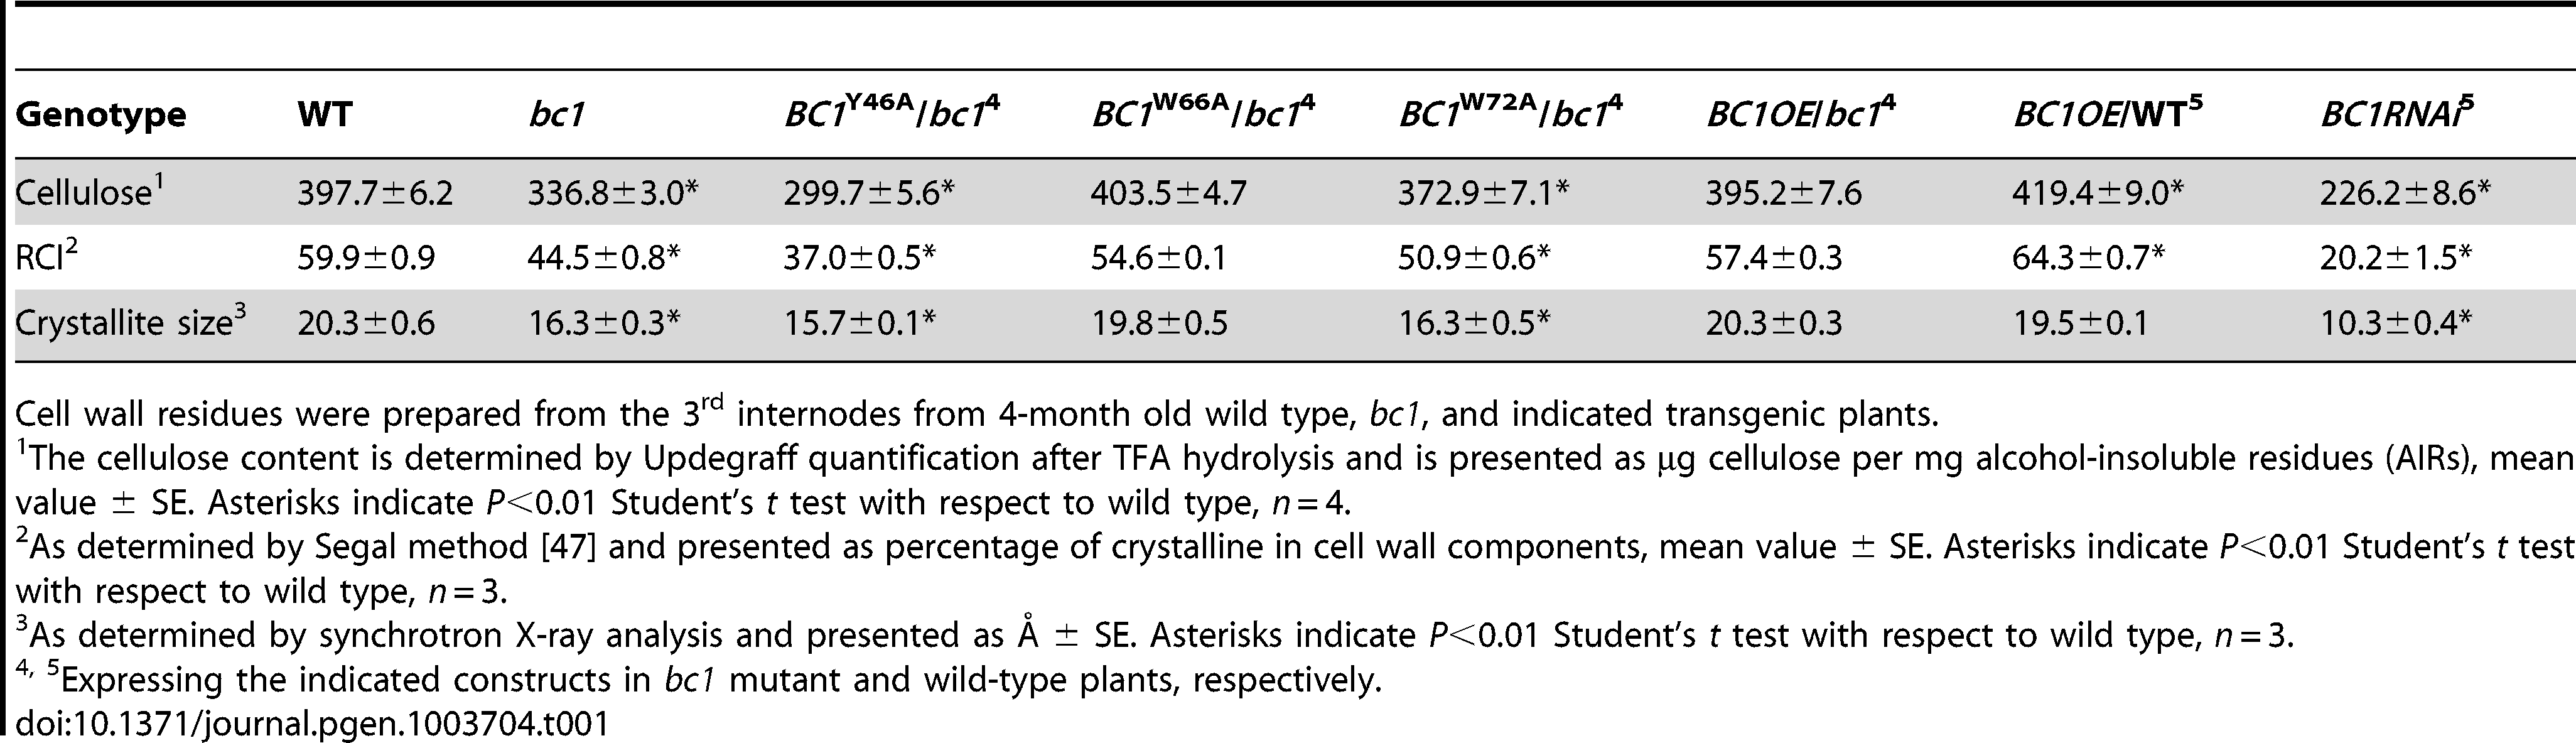 BC1 affects cellulose crystallite size and cellulose content.